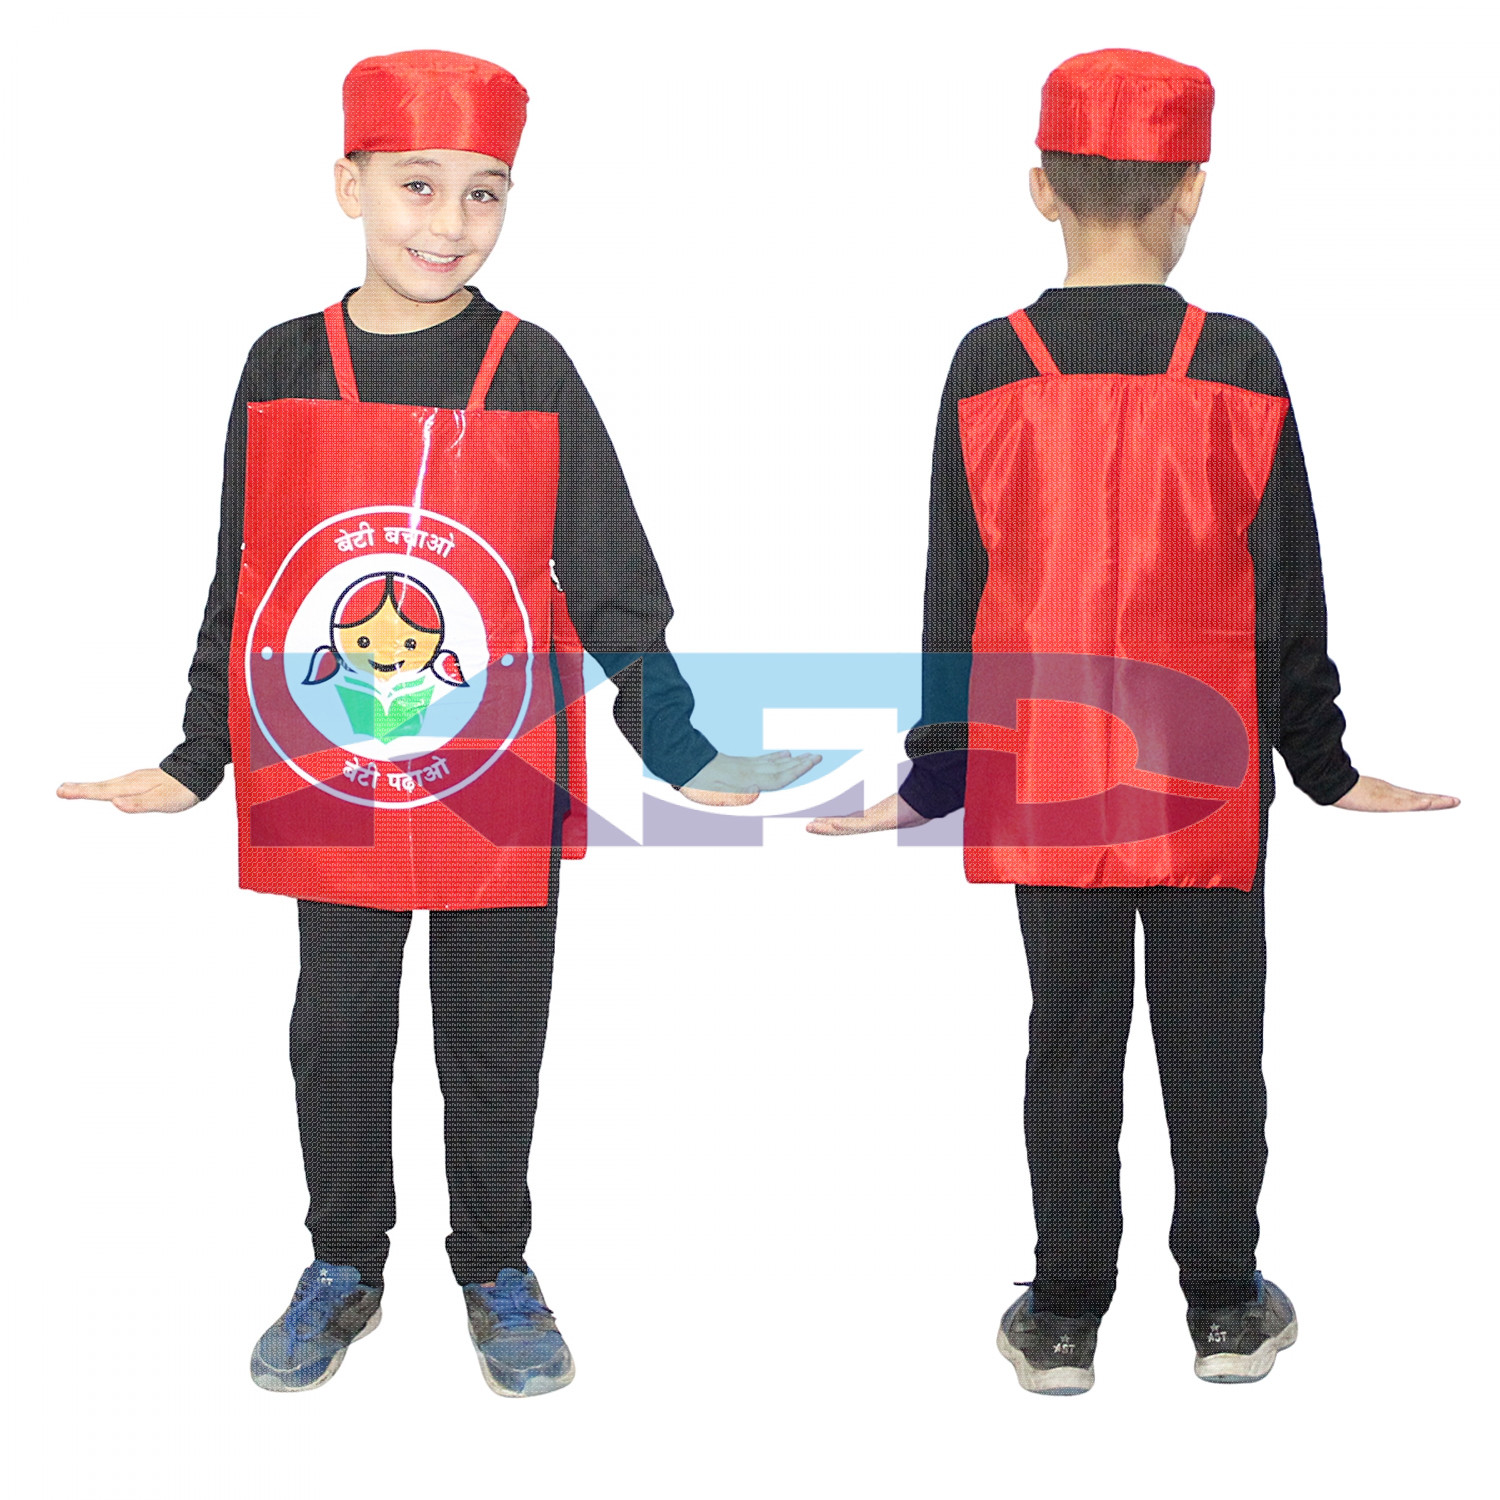 Beti Bachao Beti Padhao Costume For Kids/Social Awareness Kids Fancy Dress Costume/For Kids Annual function/Theme Party/Competition/Stage Shows/Birthday Party Dress